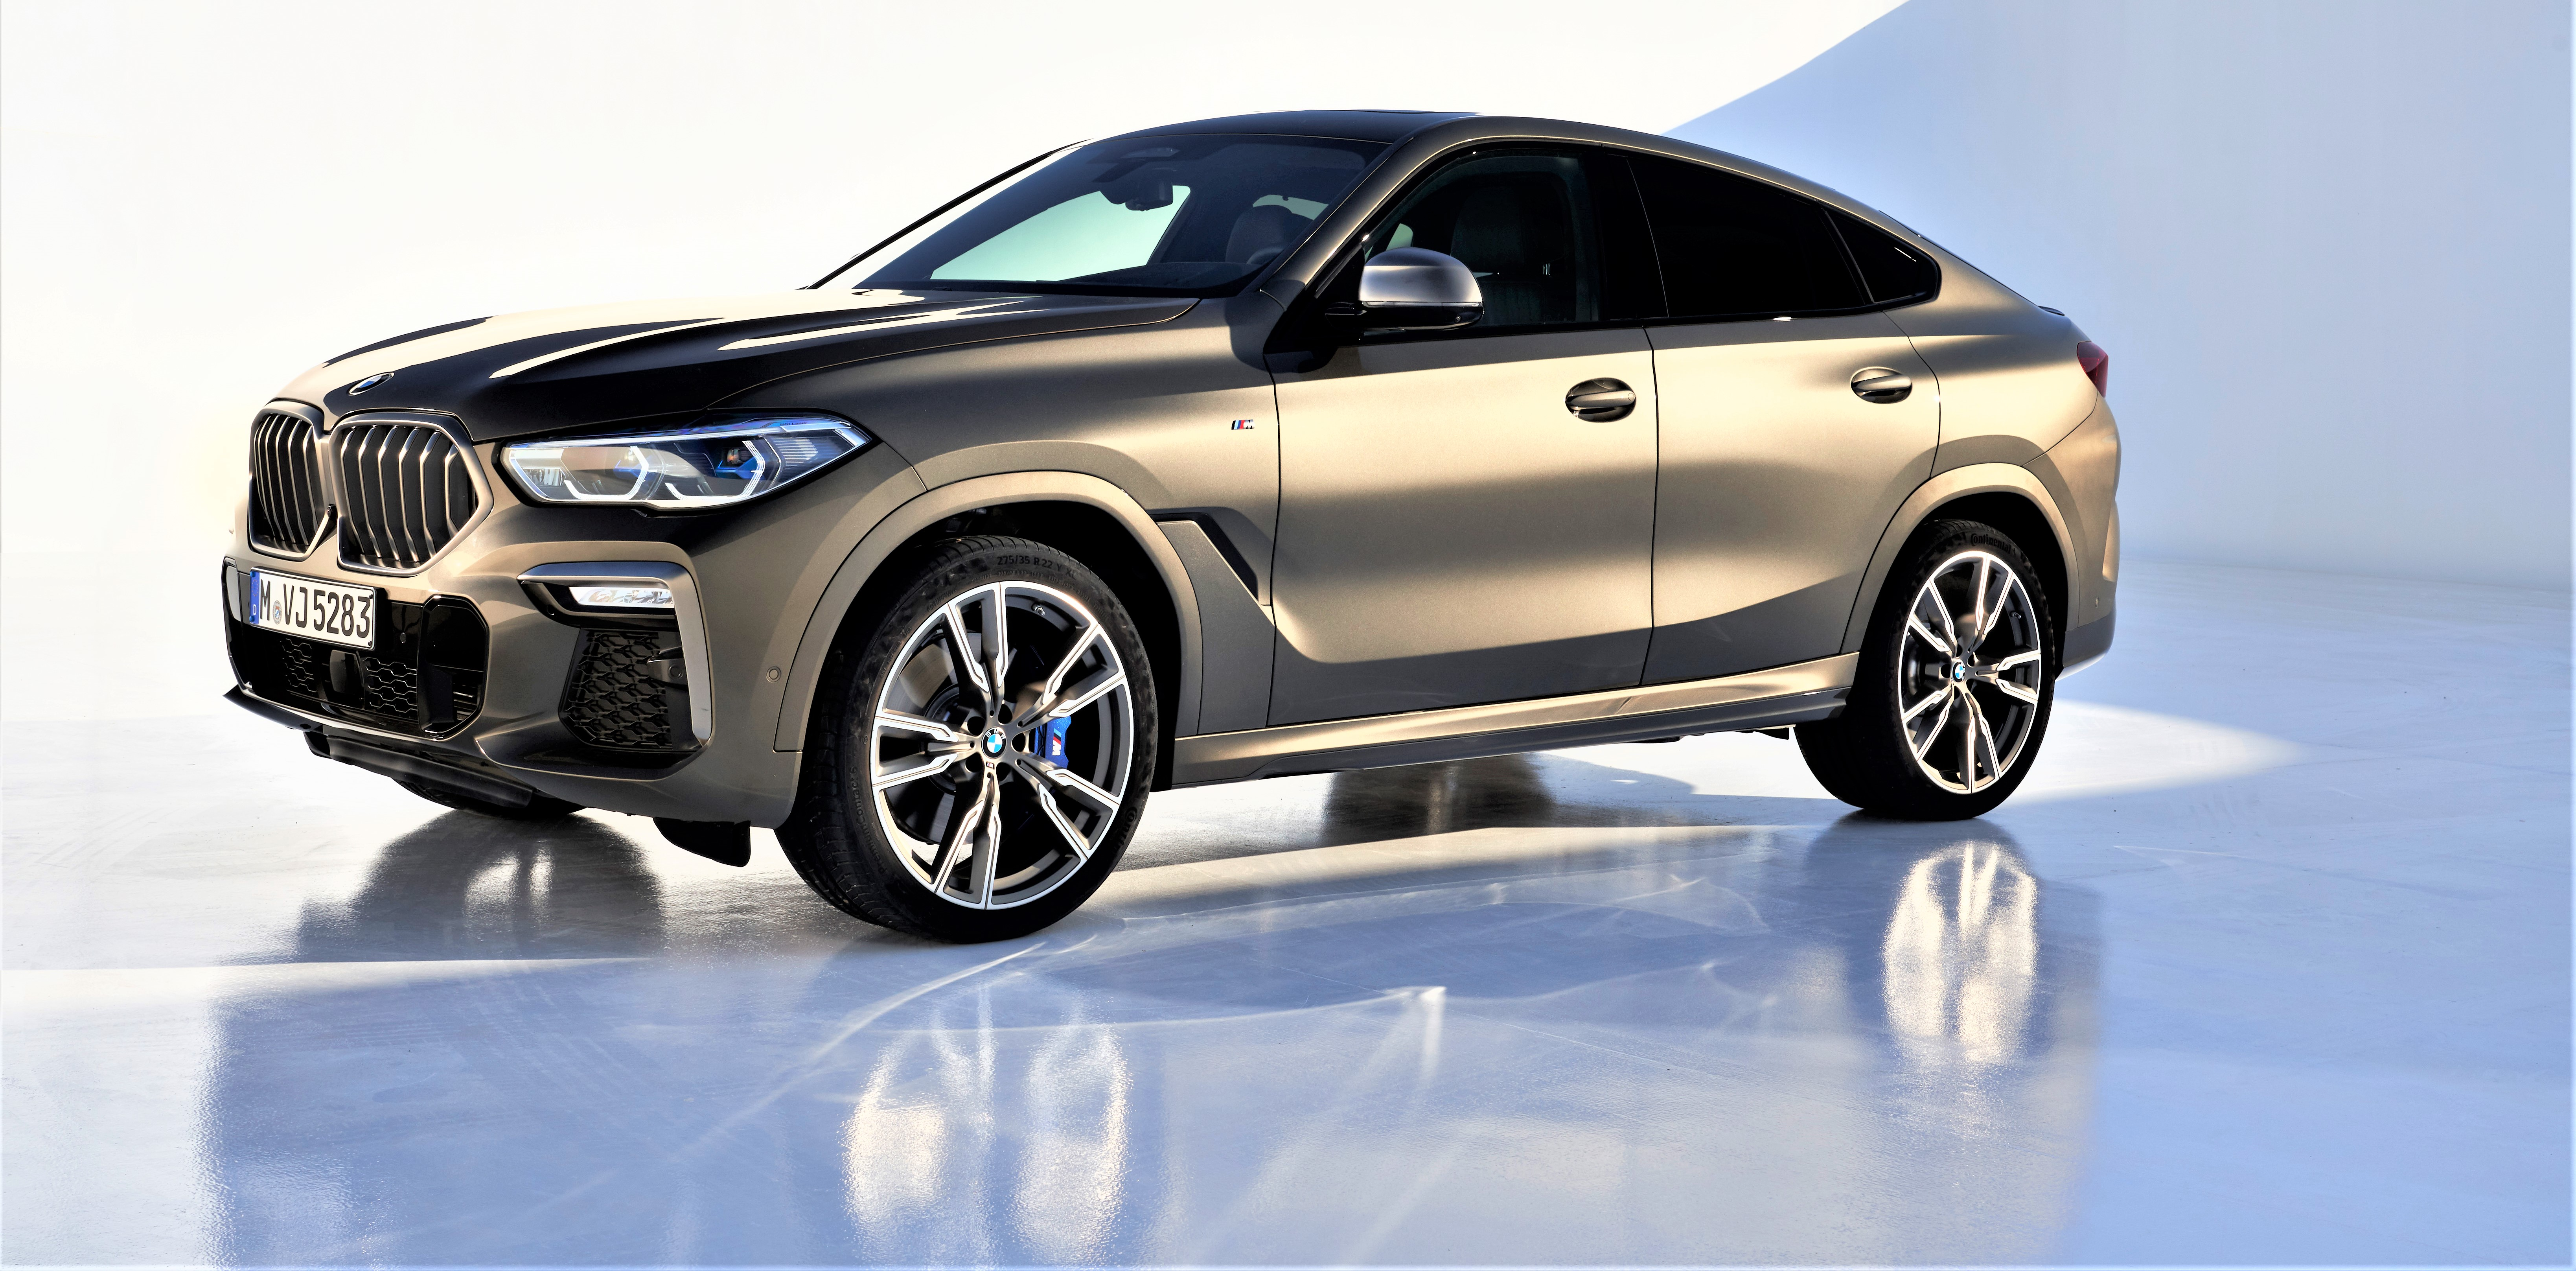 Covers Come Off New BMW X6